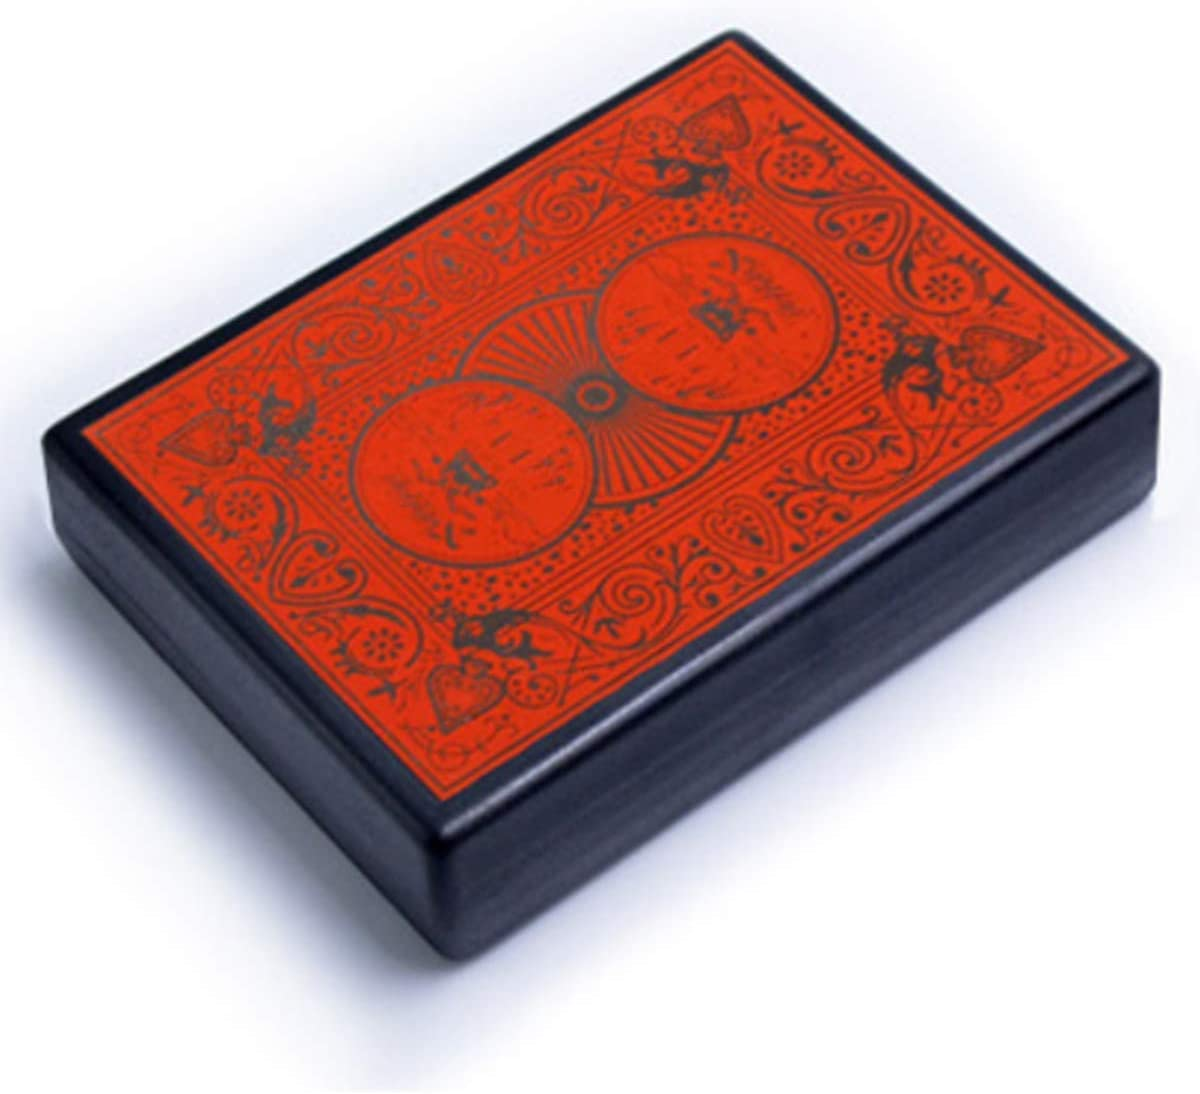 WSNMING Professional Torn Playing Card Restore Case Magic Tricks Box Close up Magic Props with Video Tutorial for Adults